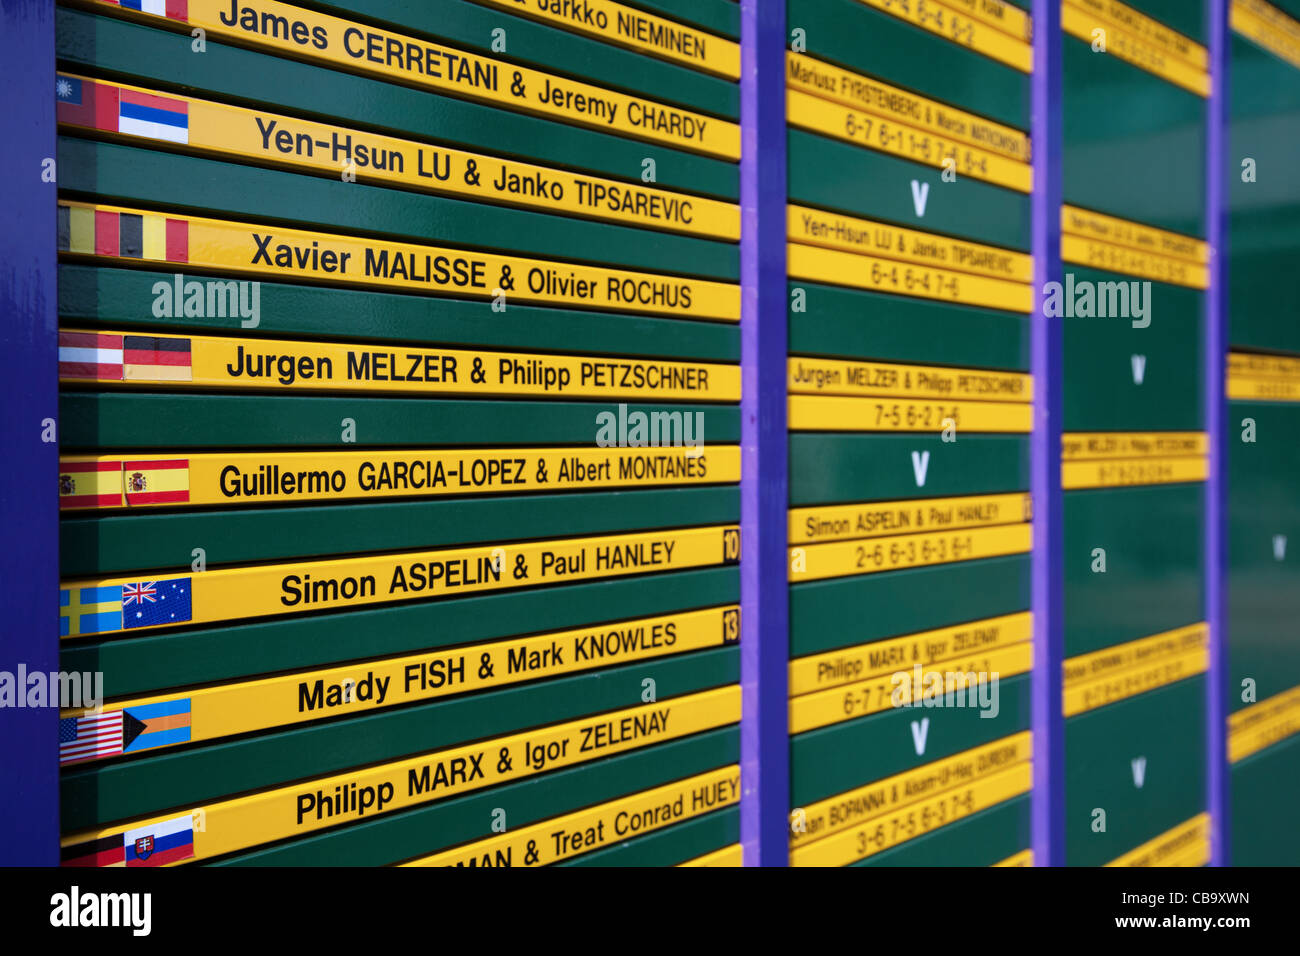 Match elimination results board in a tennis Grand Slam Championship - Stock Image